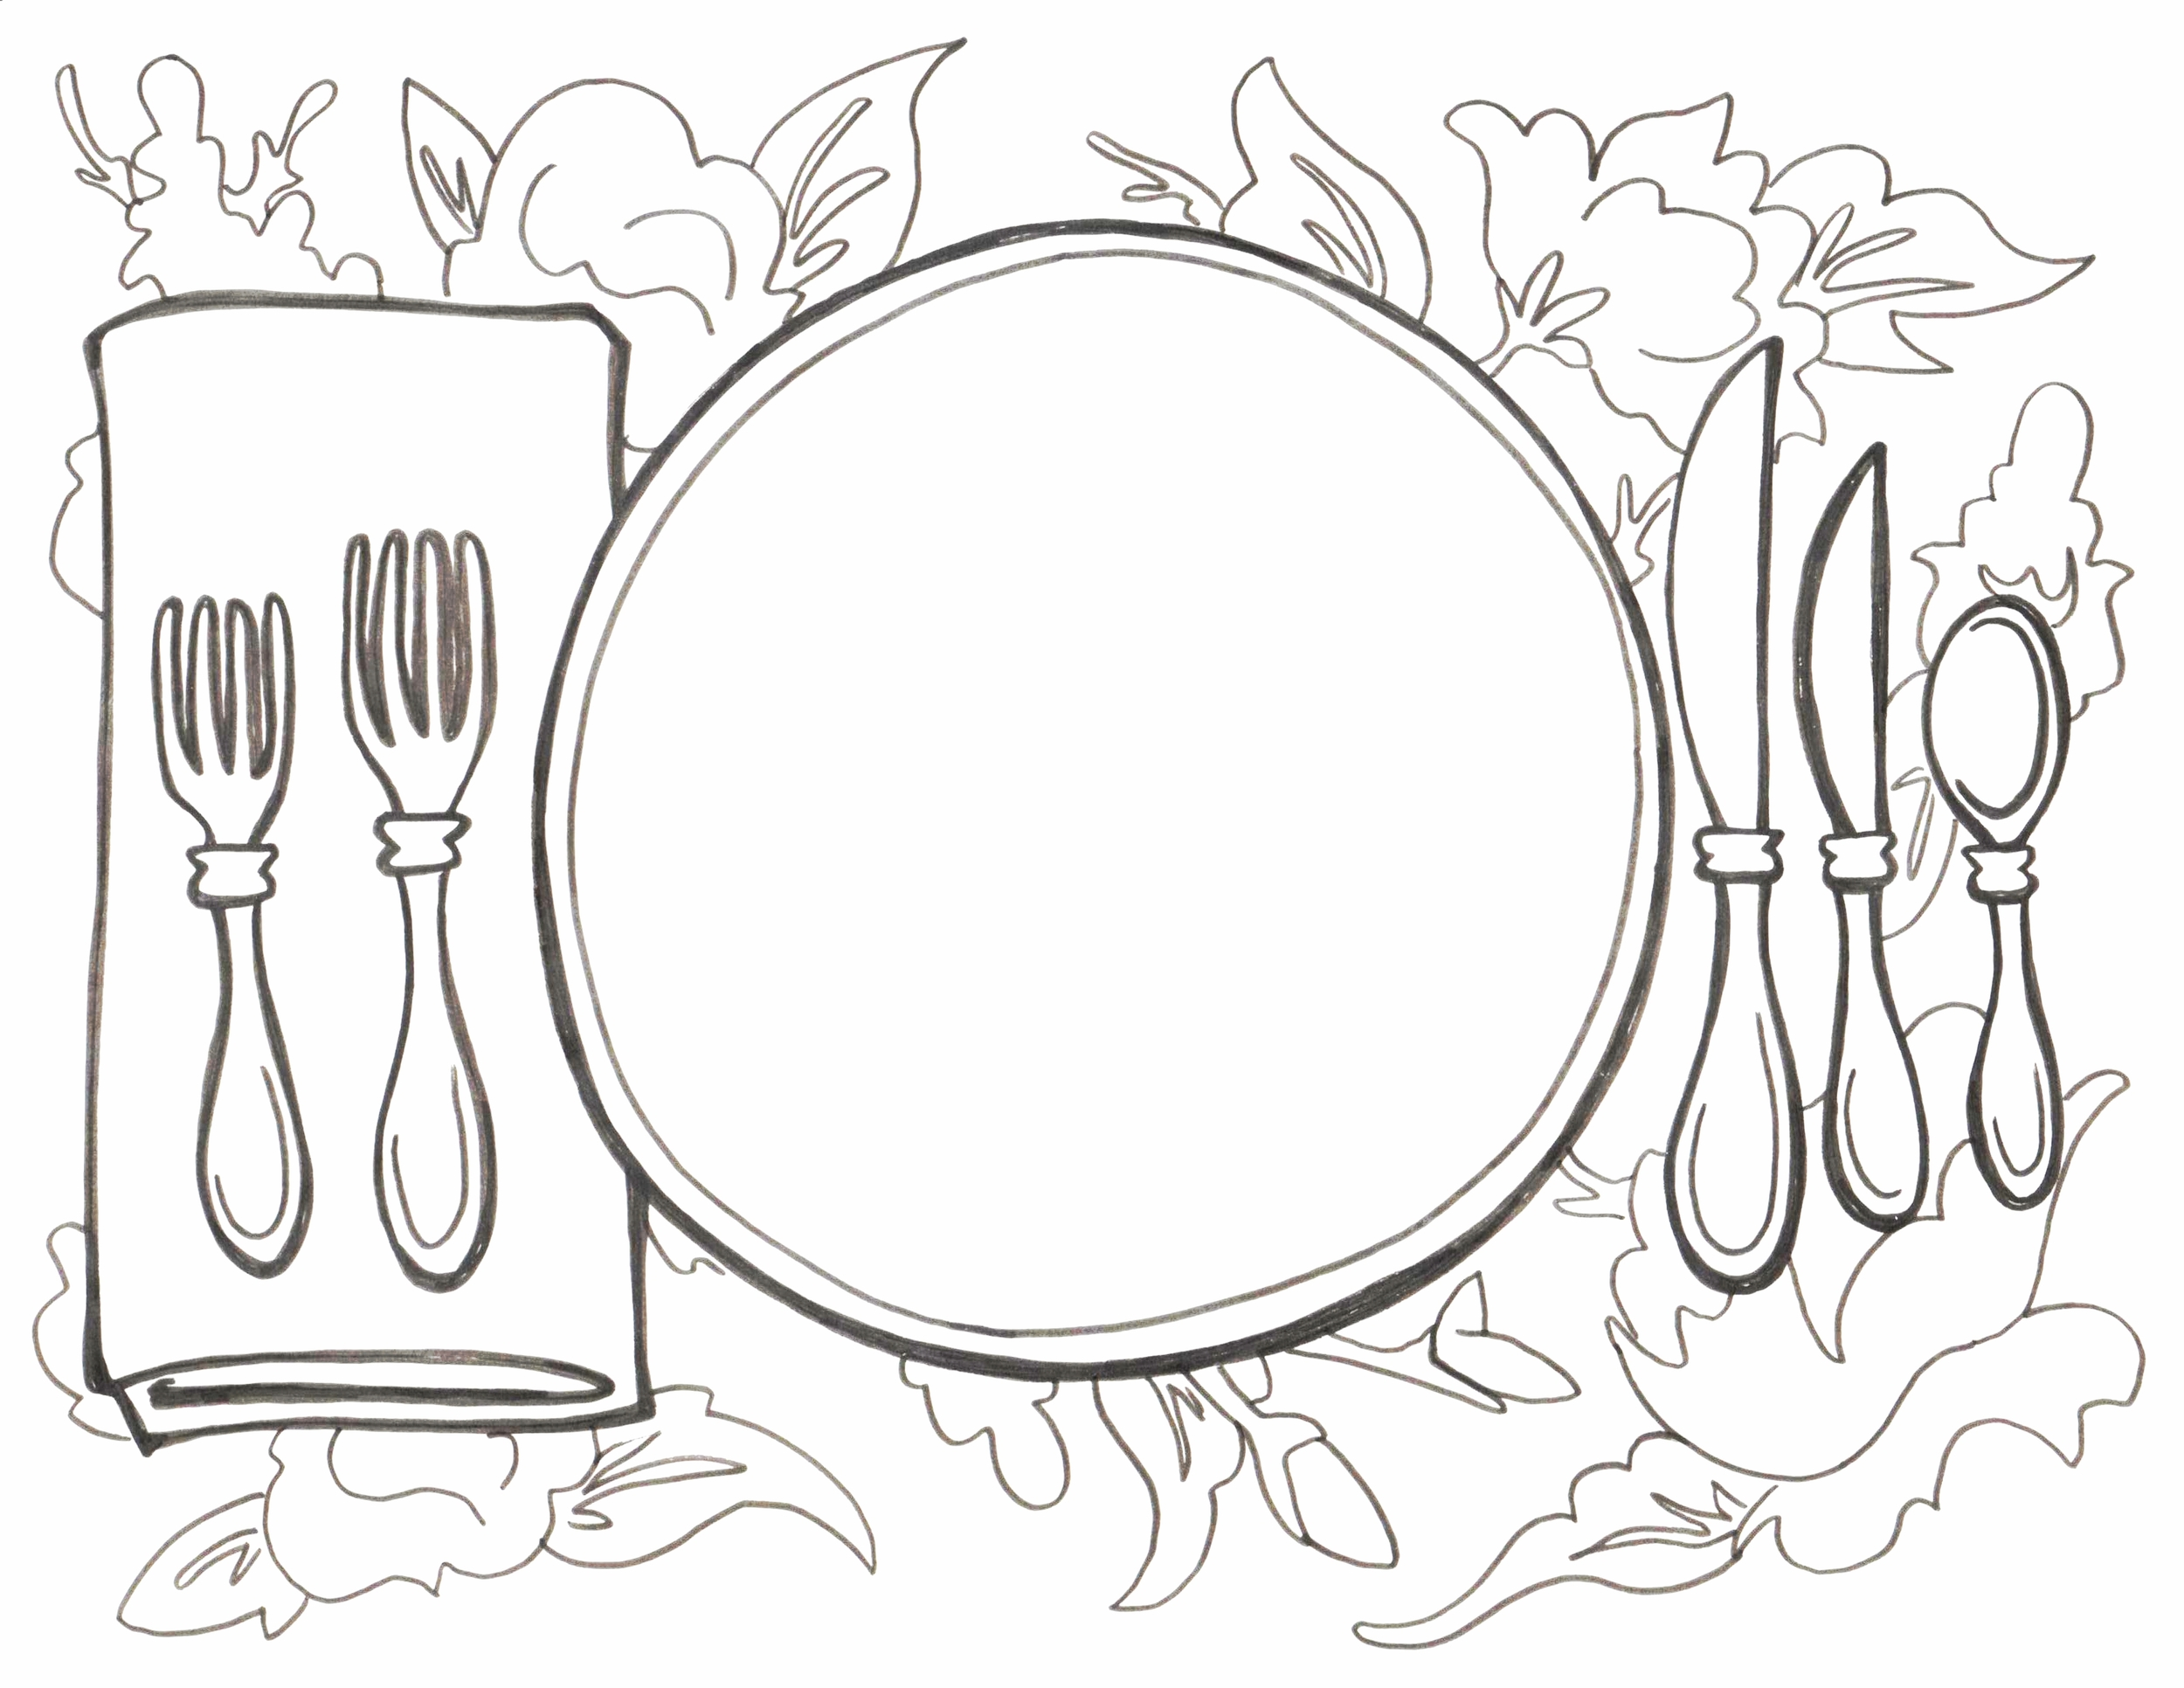 Either draw what's for dinner, or design the perfect china pattern! Both are appropriate!